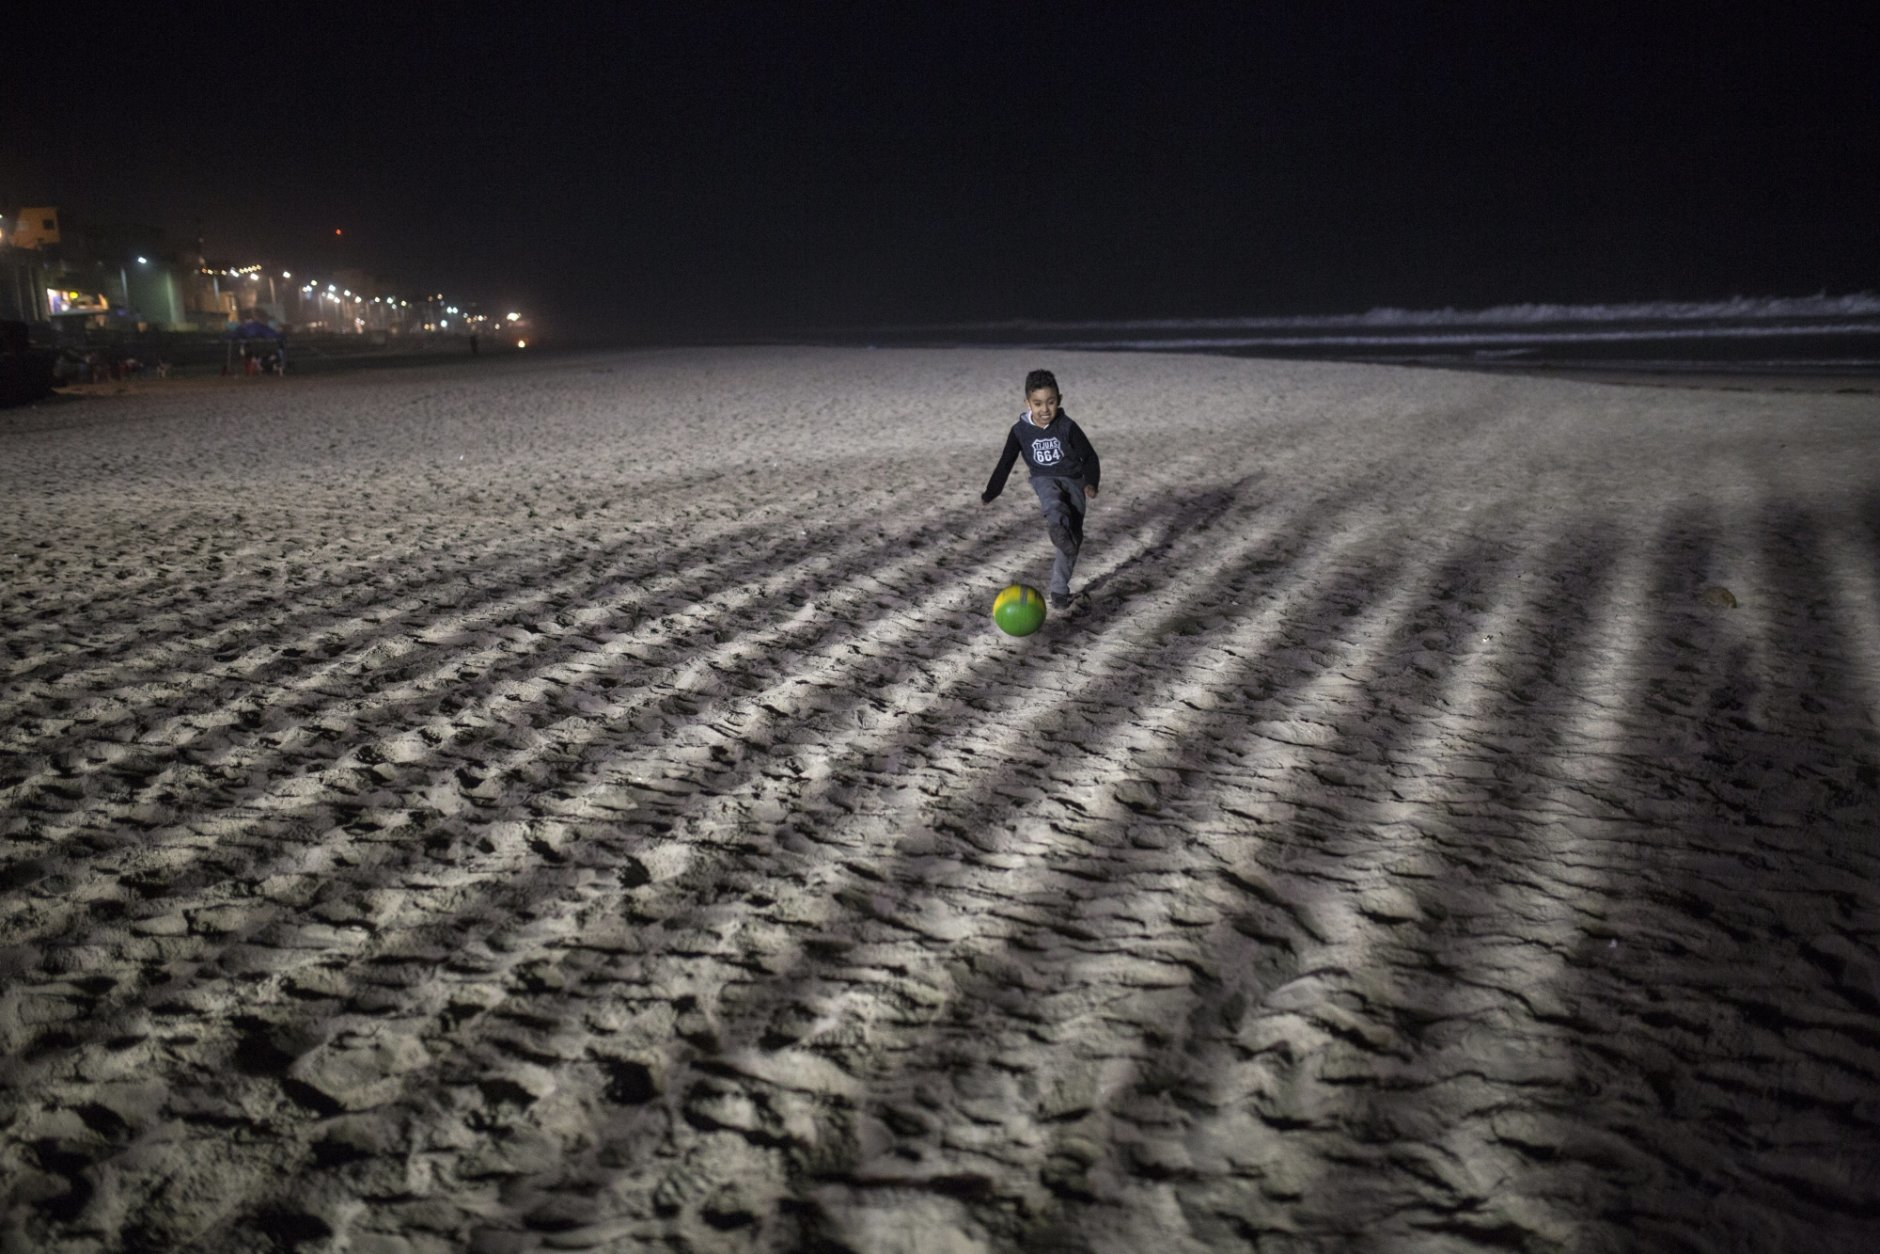 A boy plays soccer at the Mexican side of the border with the U.S. at the Pacific Ocean, Tijuana, Mexico, Friday, Nov. 16, 2018. With about 3,000 Central American migrants having reached the Mexican border across from California and thousands more anticipated, the mayor of Tijuana said Friday that the city was preparing for an influx that will last at least six months and may have no end in sight. (AP Photo/Rodrigo Abd)